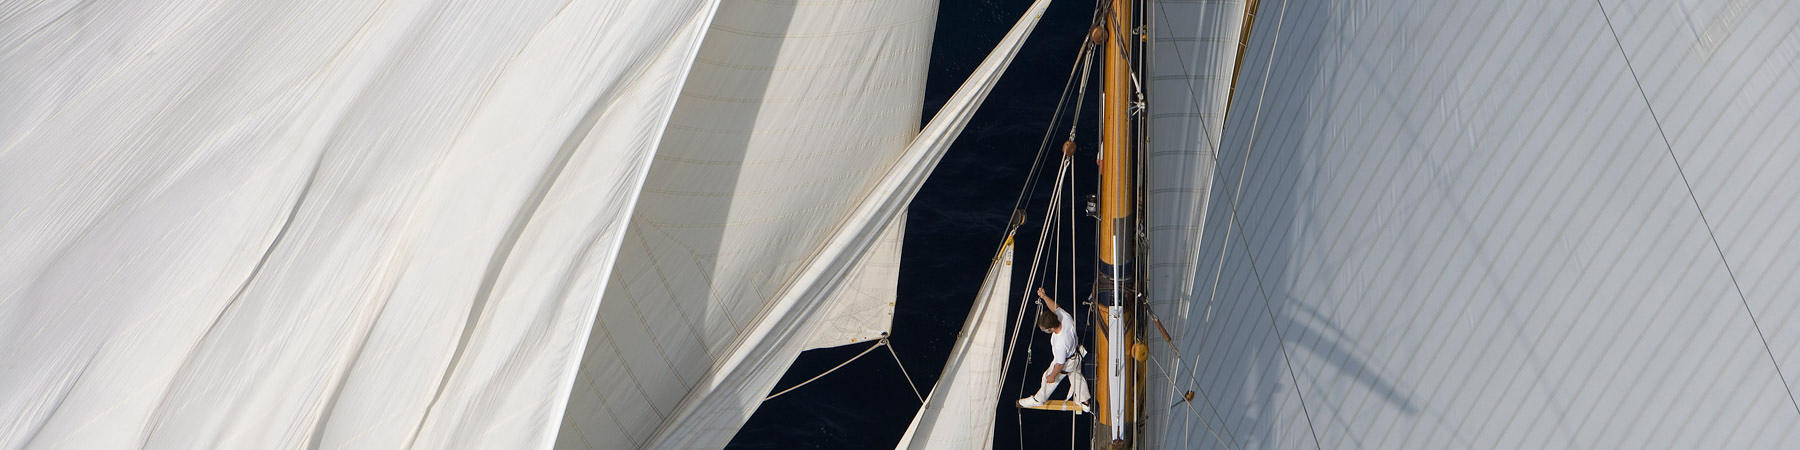 Classic Yachting - Photo Pêcheur d'Images